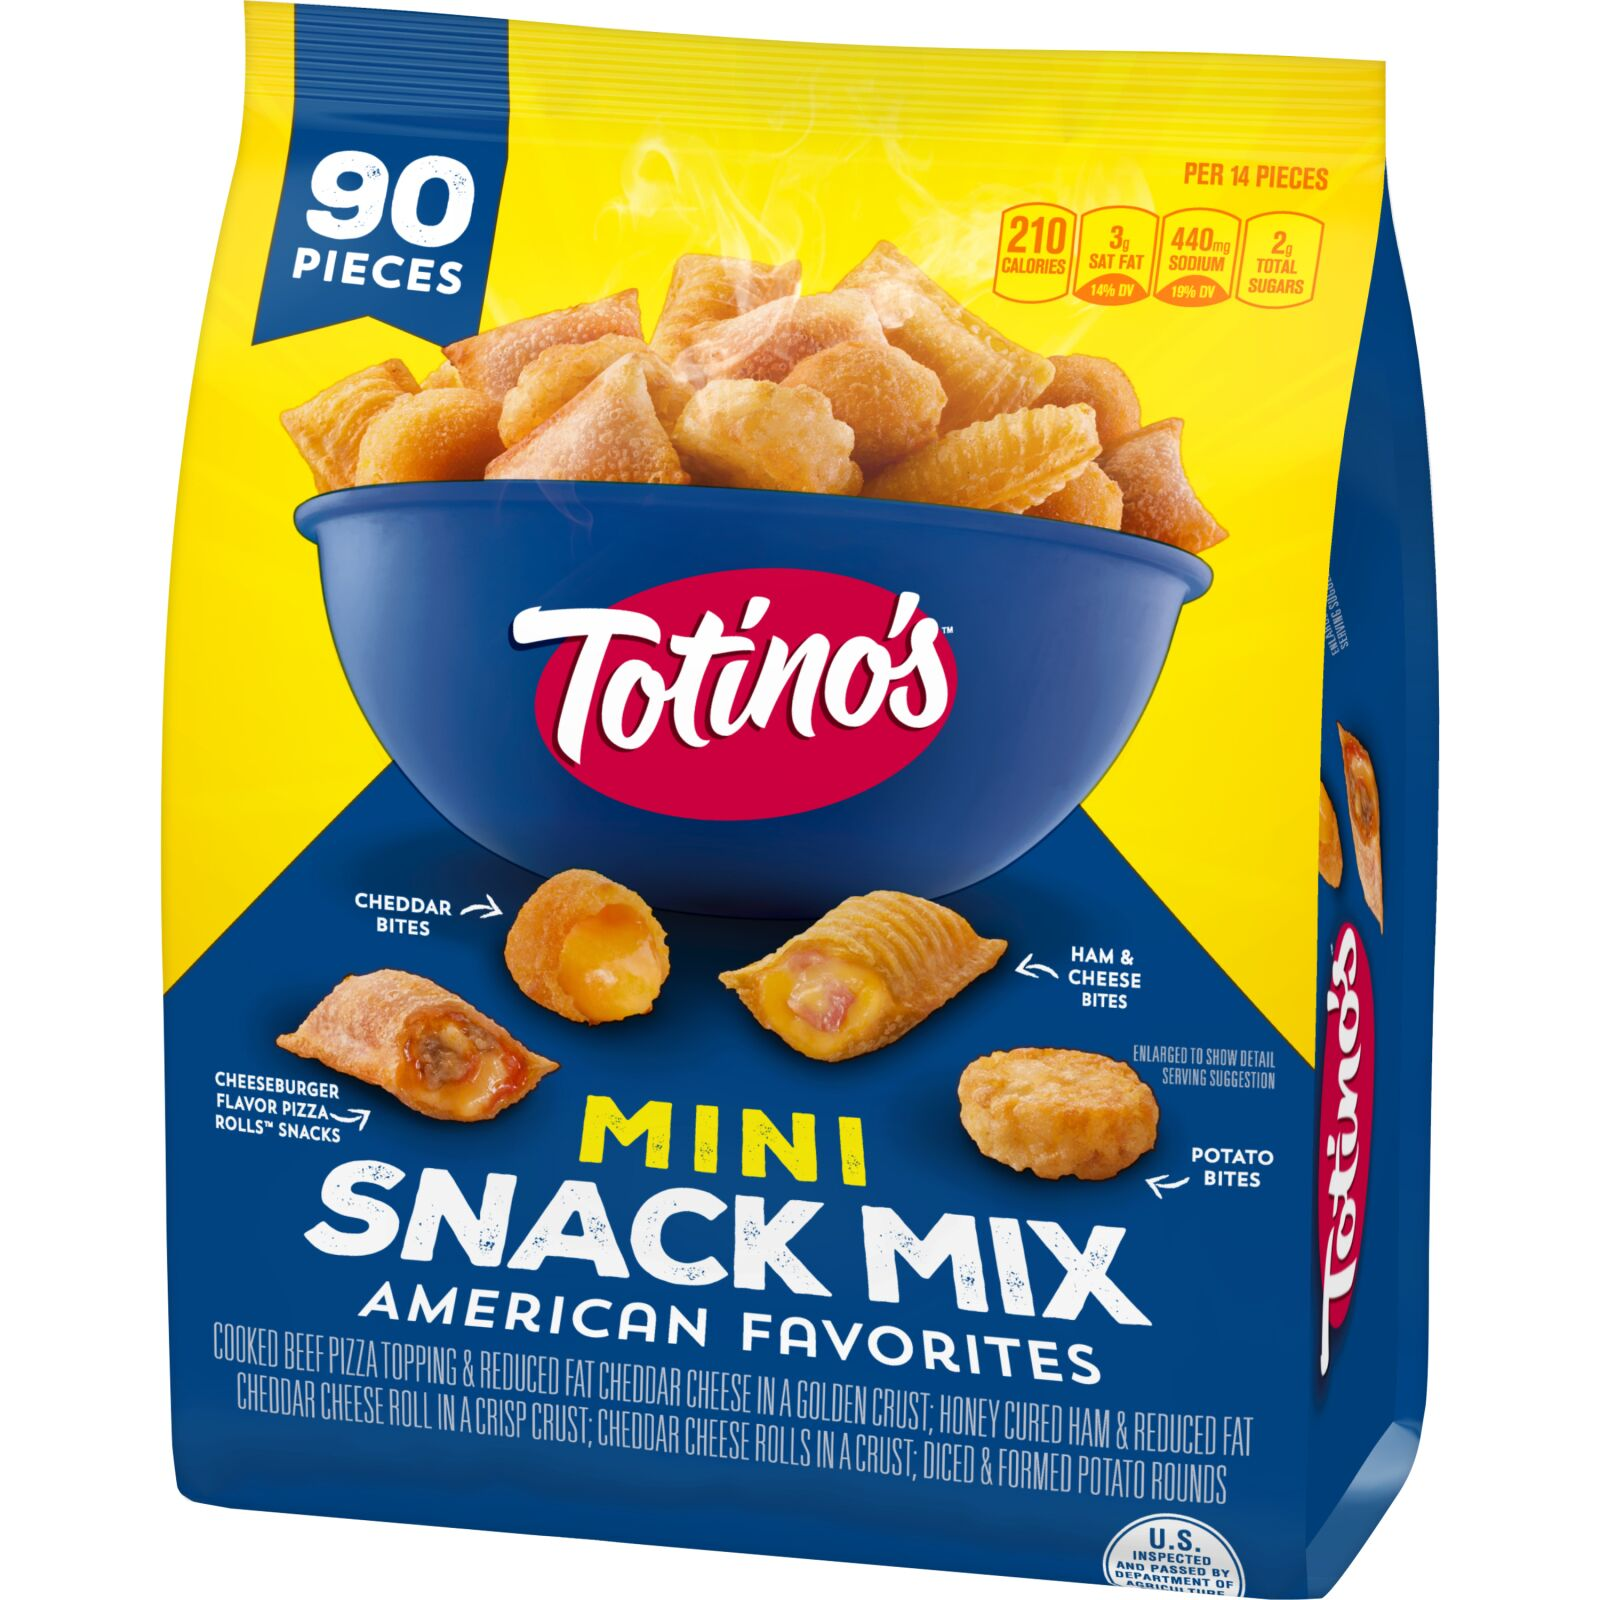 After school snacks: What snacks should parents have stocked for the kids?